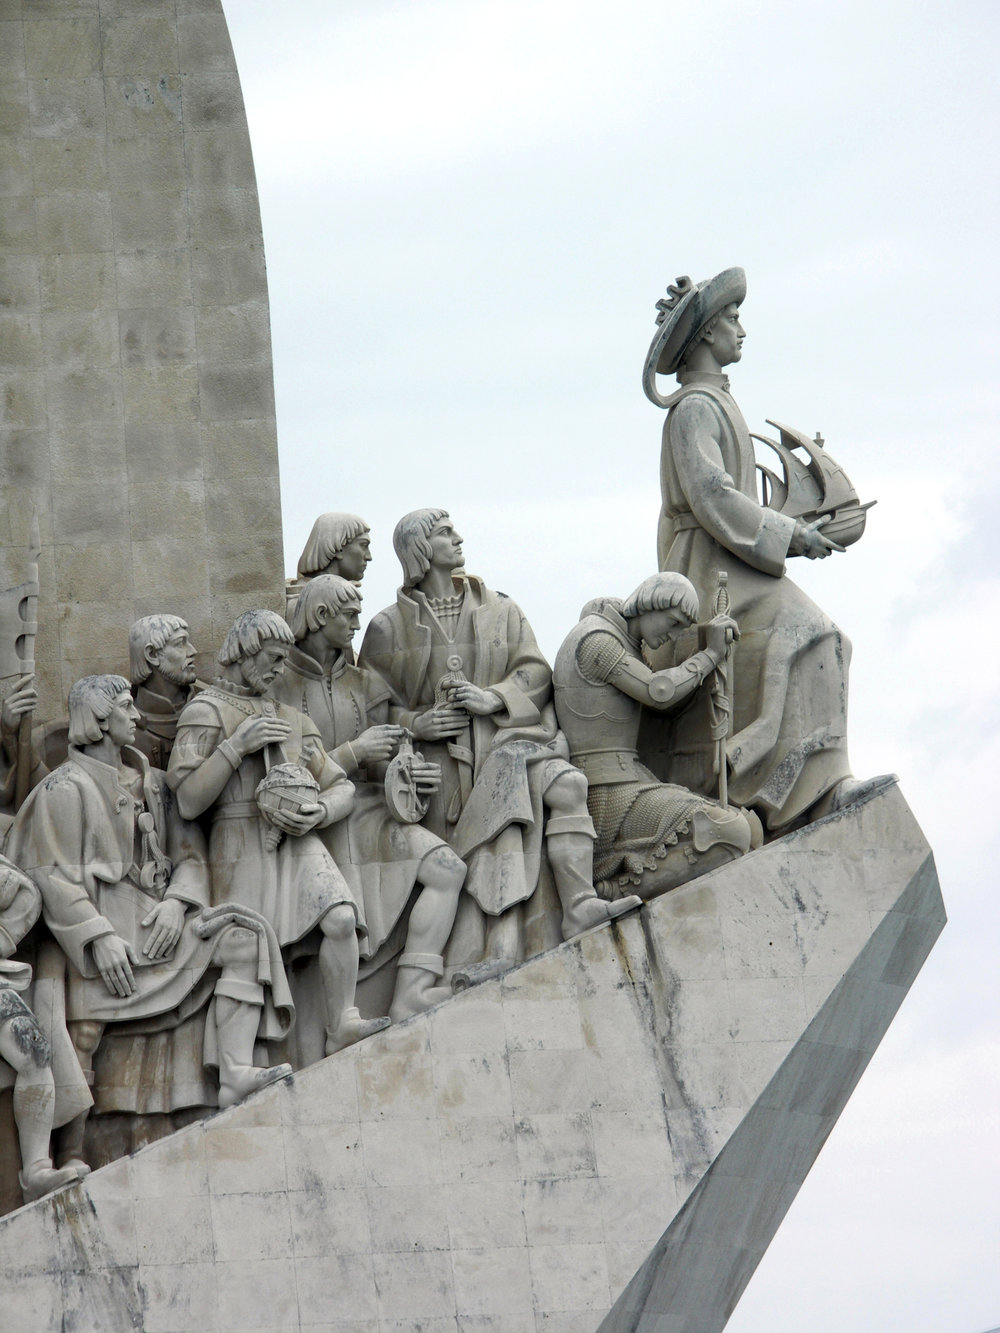 Detail of some of the 33 figures depicted amongst the leaders in the Age of Discovery, with Henry the Navigator holding a carrack at the top of the ramp, Monument of the Discoveries, Lisbon